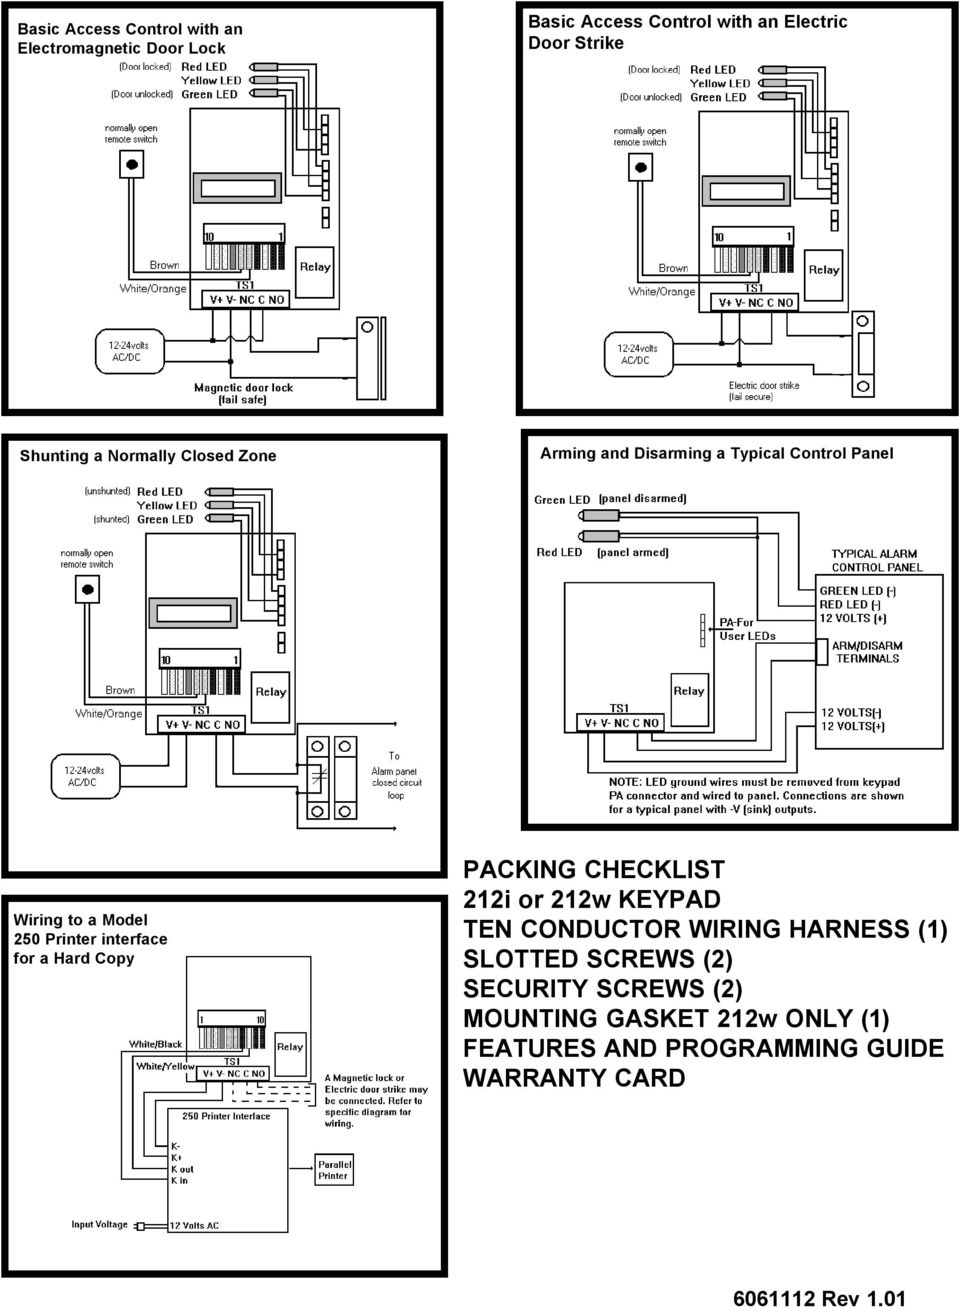 [DIAGRAM_5NL]  Iei Keypads Wiring Diagram - 70 Chevelle Bulkhead Wiring Harness Diagram -  pontiacs.lalu.decorresine.it | Ici Keypad Wiring Diagram |  | Wiring Diagram Resource